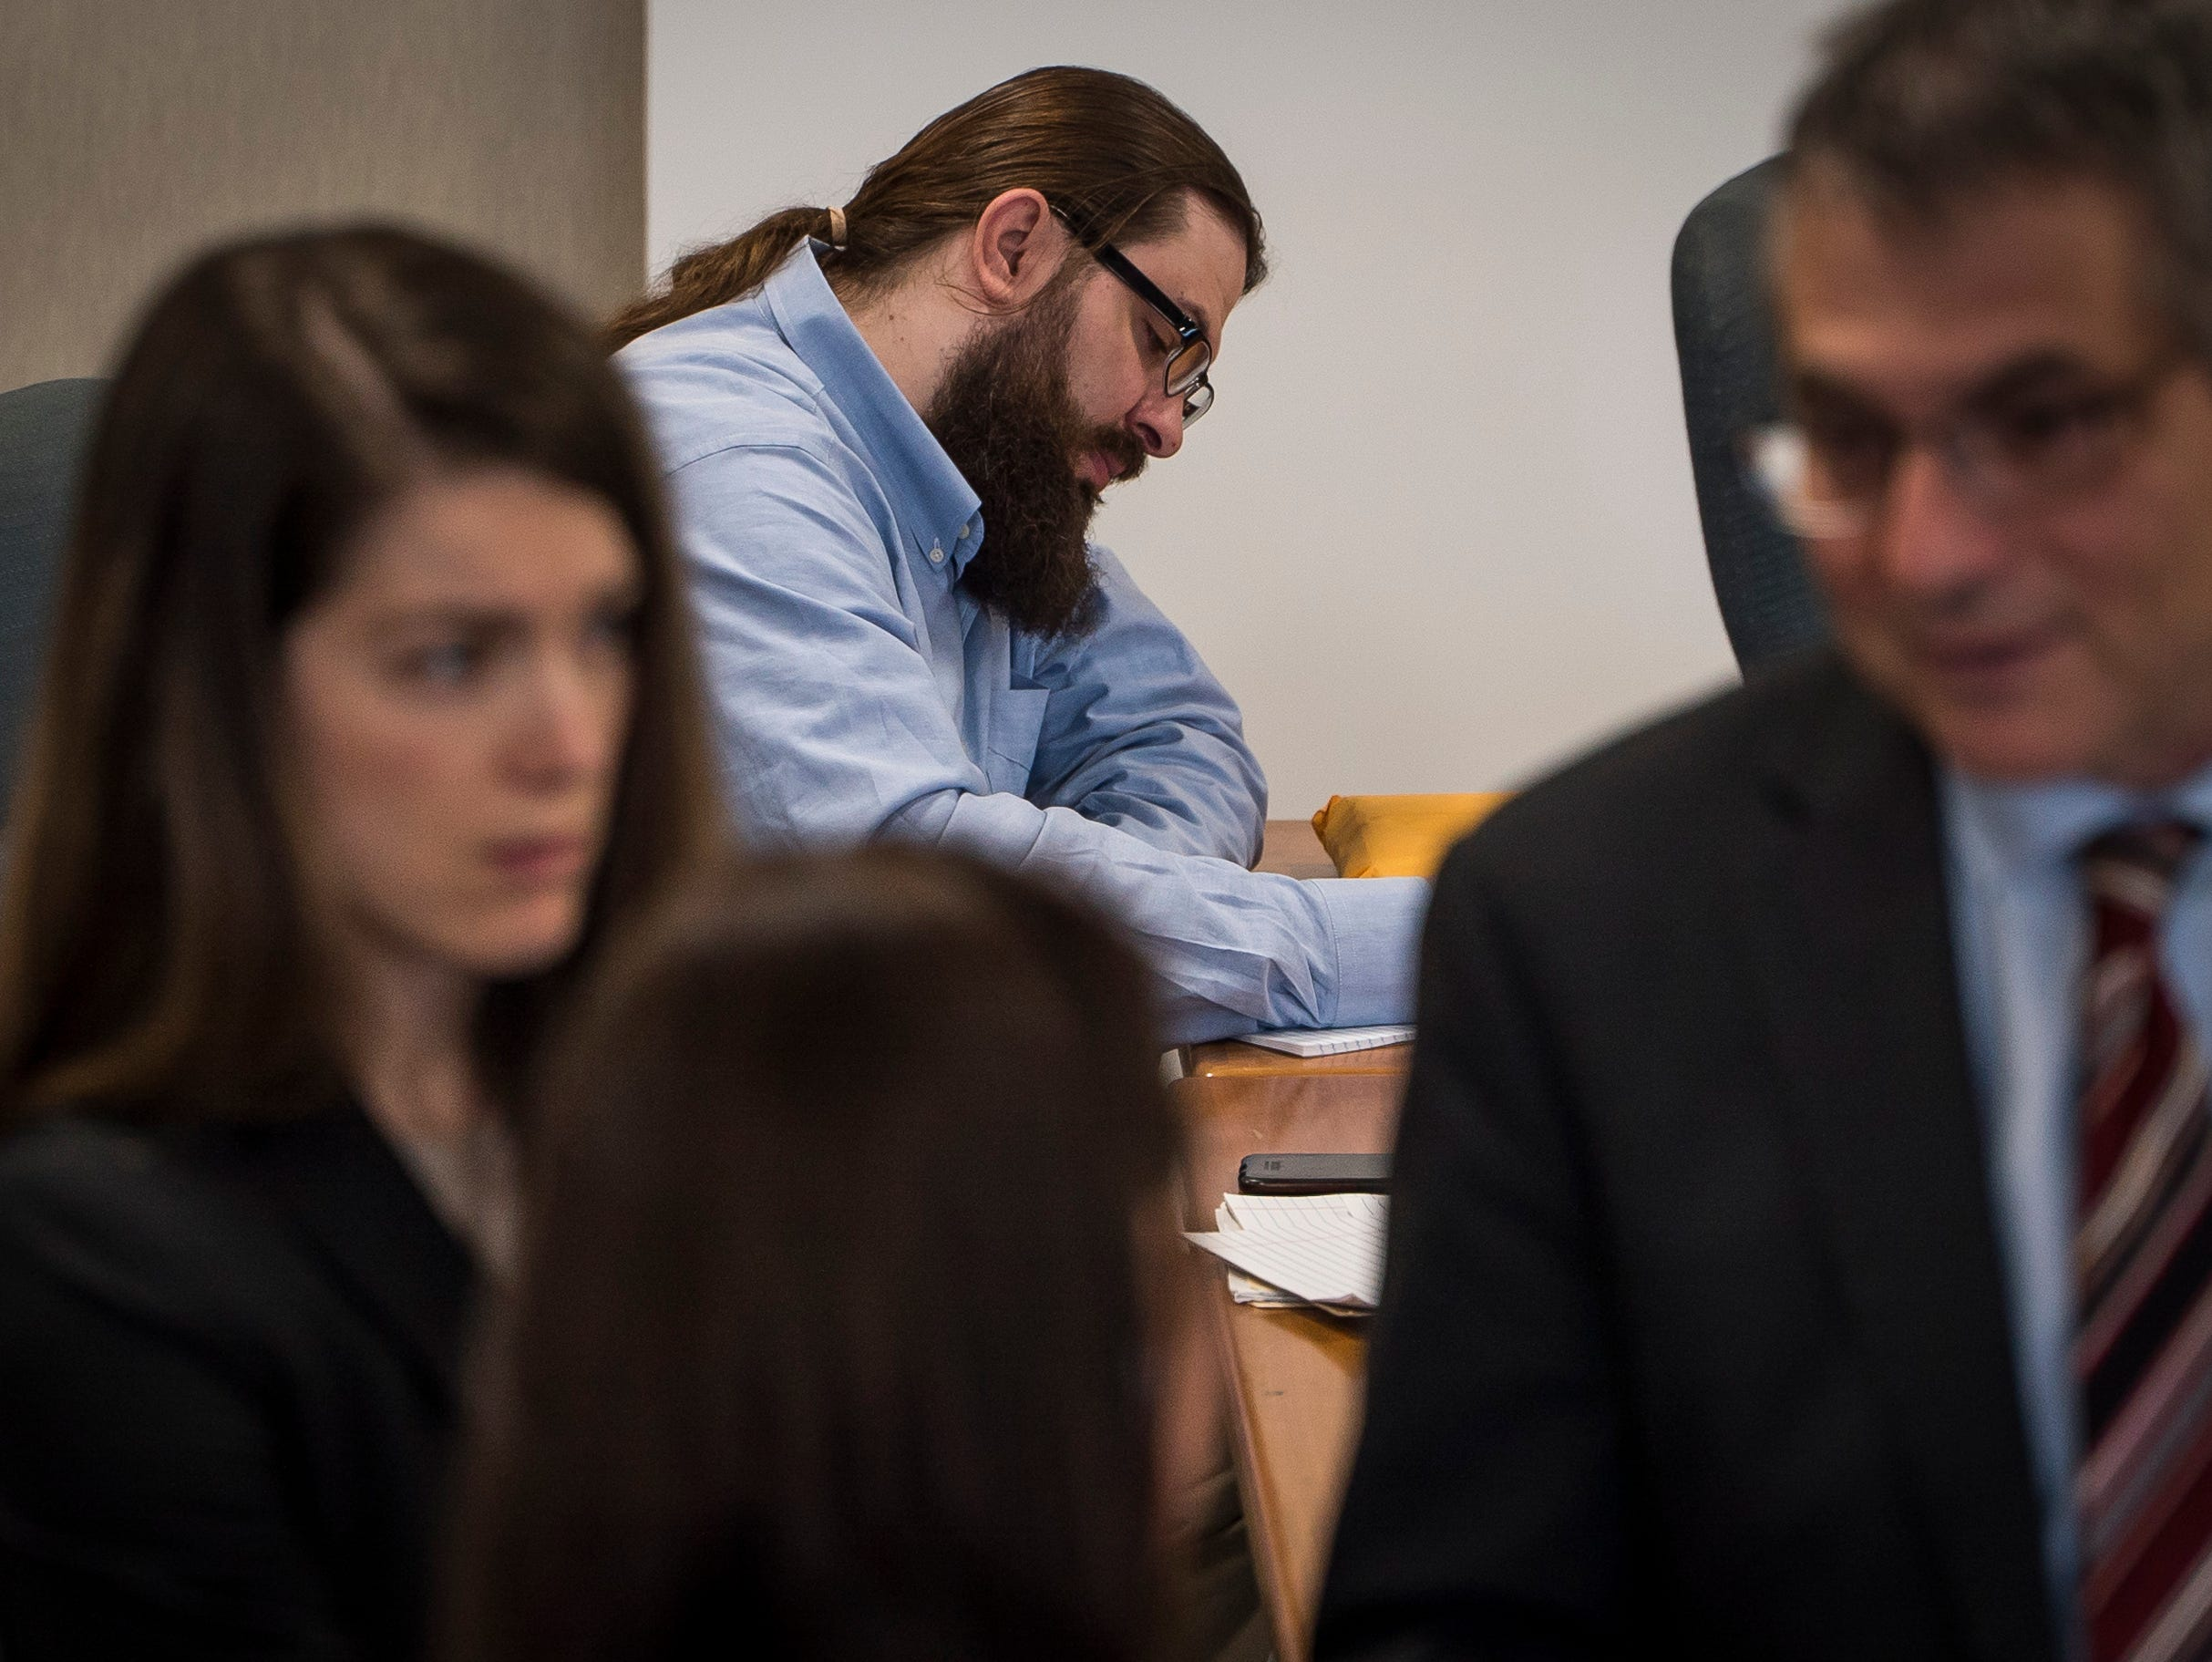 Steven Bourgoin takes notes in Vermont Superior Court in Burlington on Friday, May 10, 2019, during his trial. He faces second-degree murder charges in the deaths of 5 teens killed in a crash on I89 in 2016.